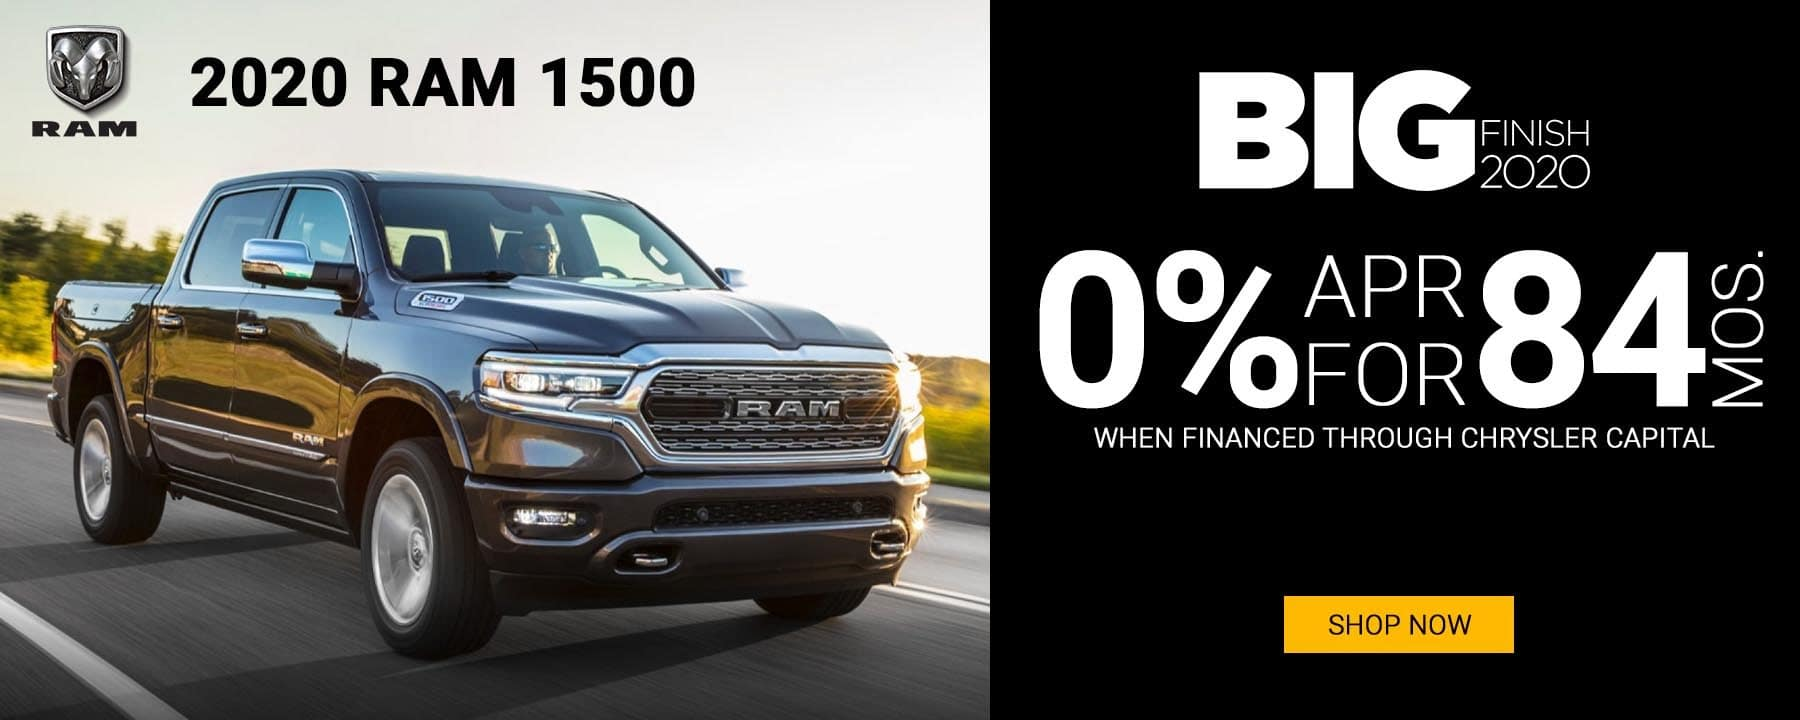 Big Finish 2020 RAM Sales Event. 0 percent APR up to 84 months on a new 2020 RAM 1500!